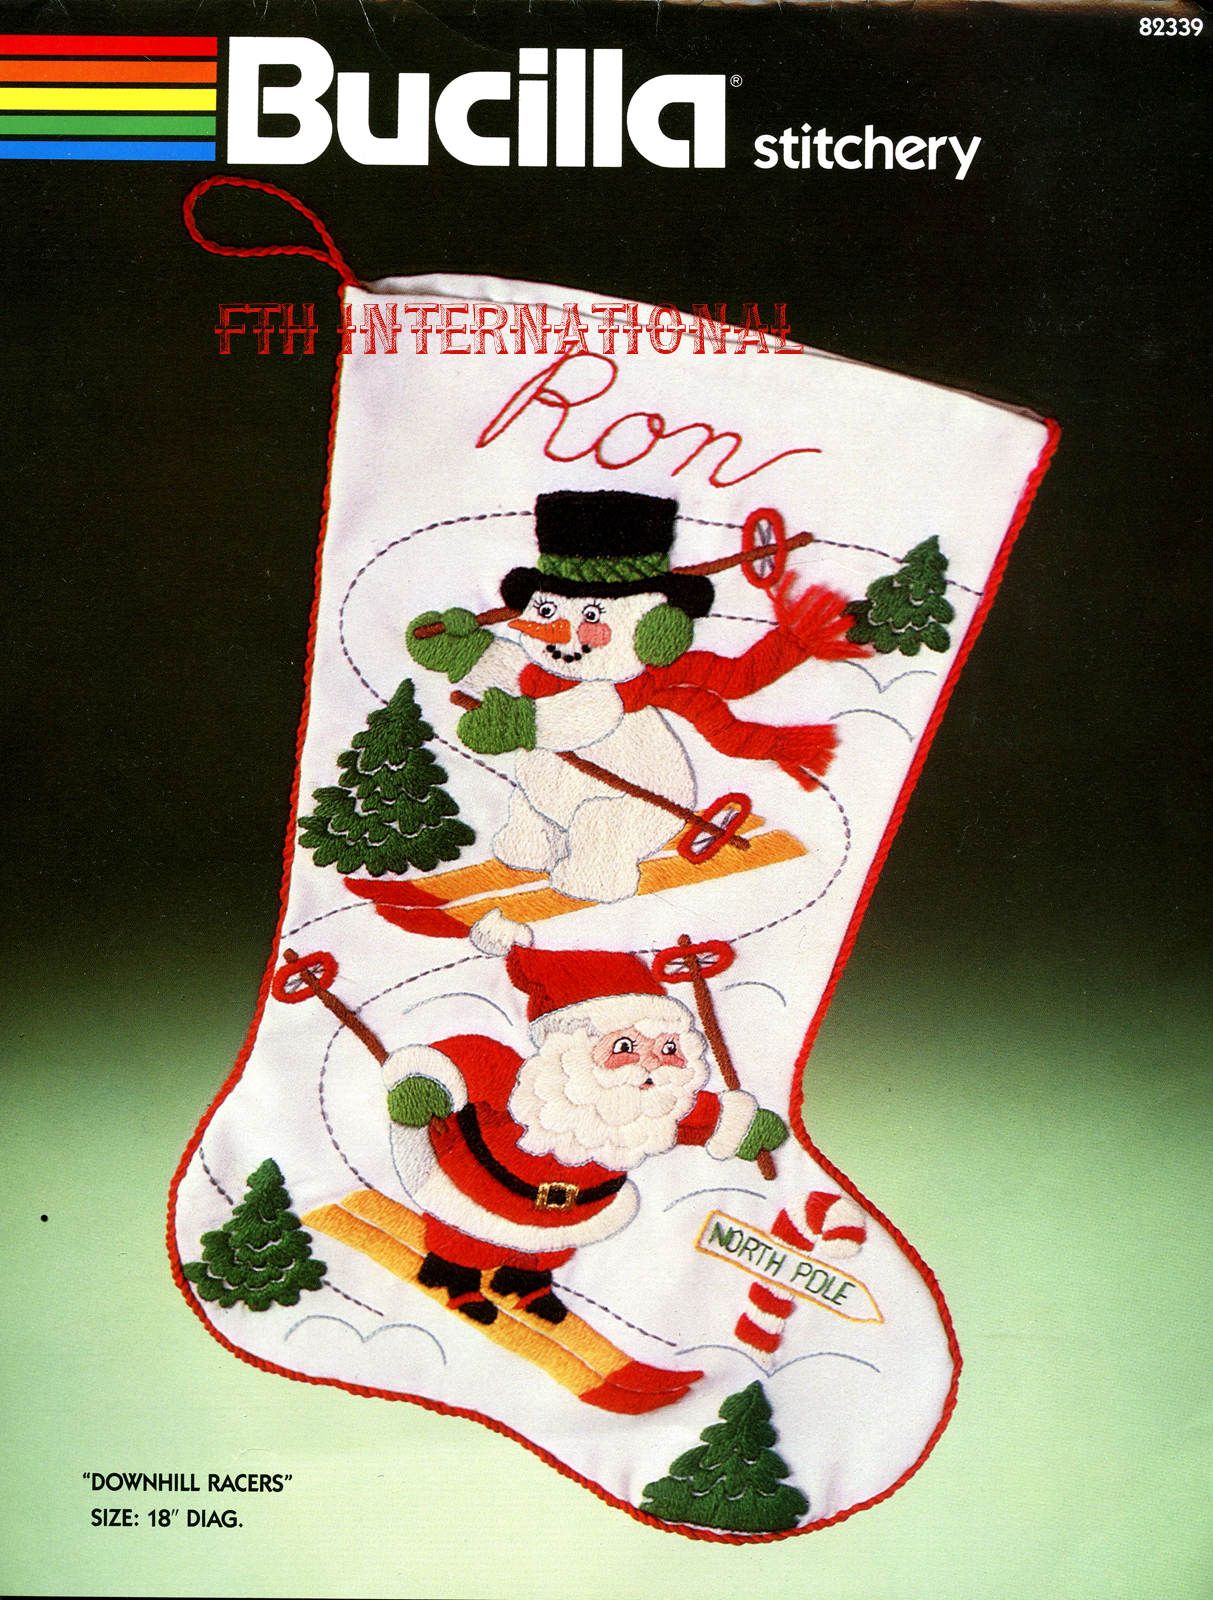 Bucilla Crewel Christmas Stocking Kits